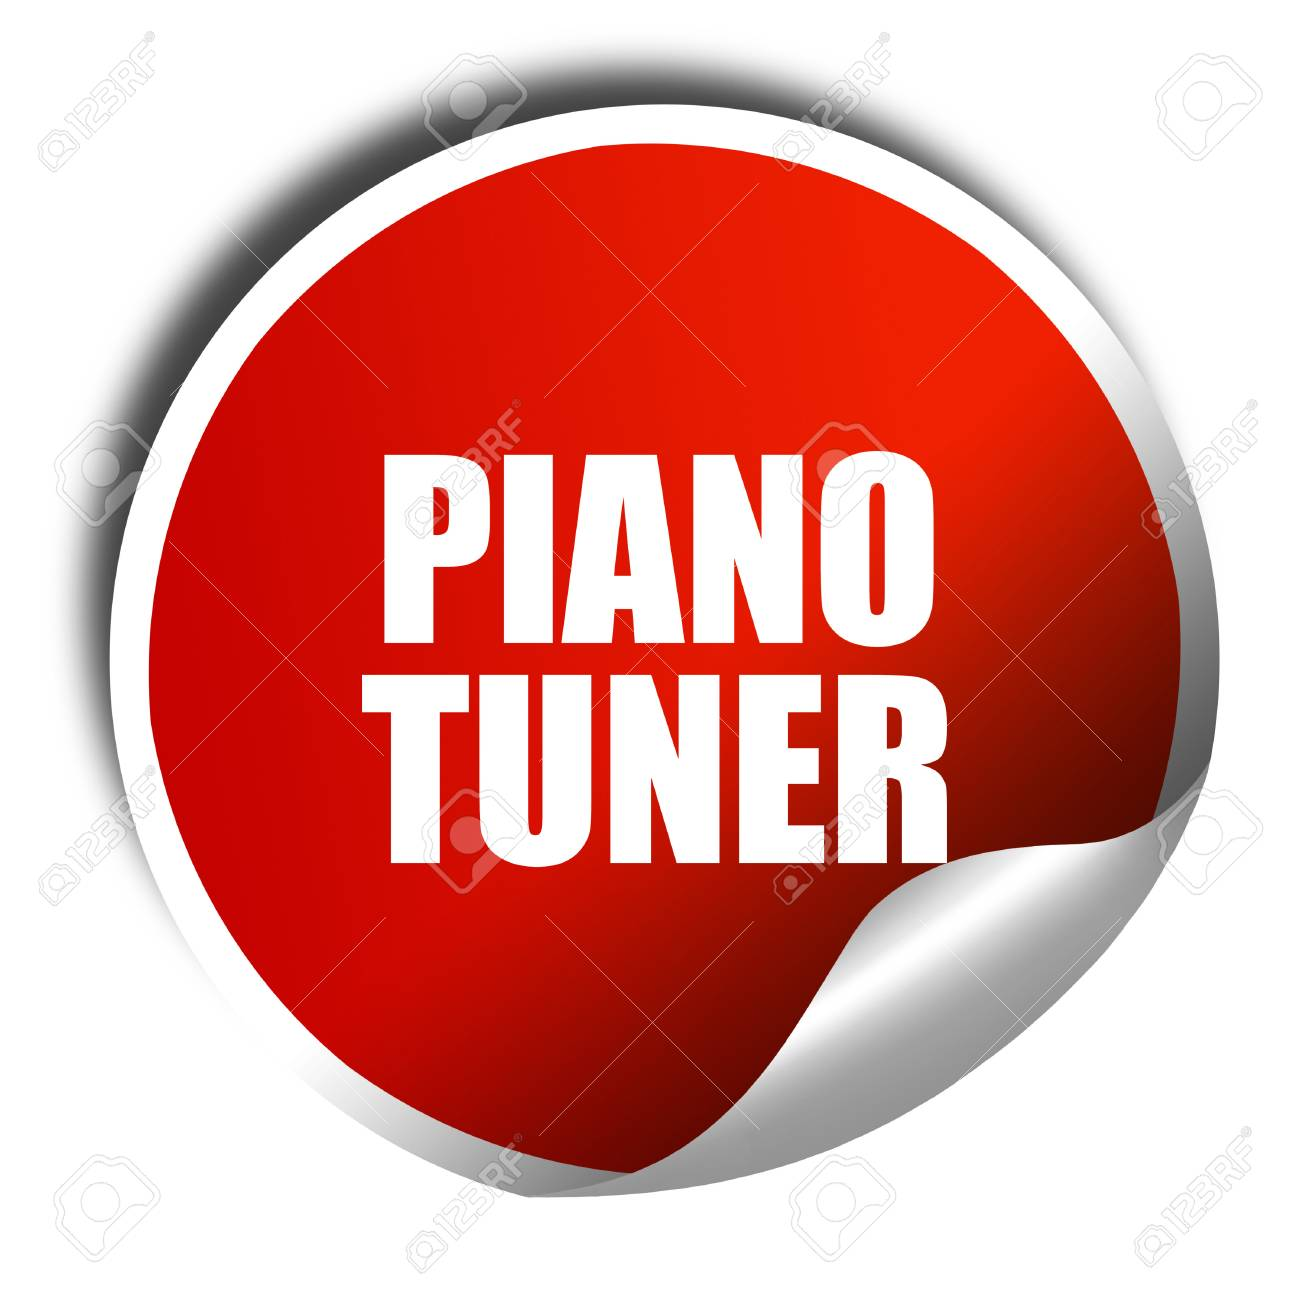 piano tuner, 3D rendering, red sticker with white text